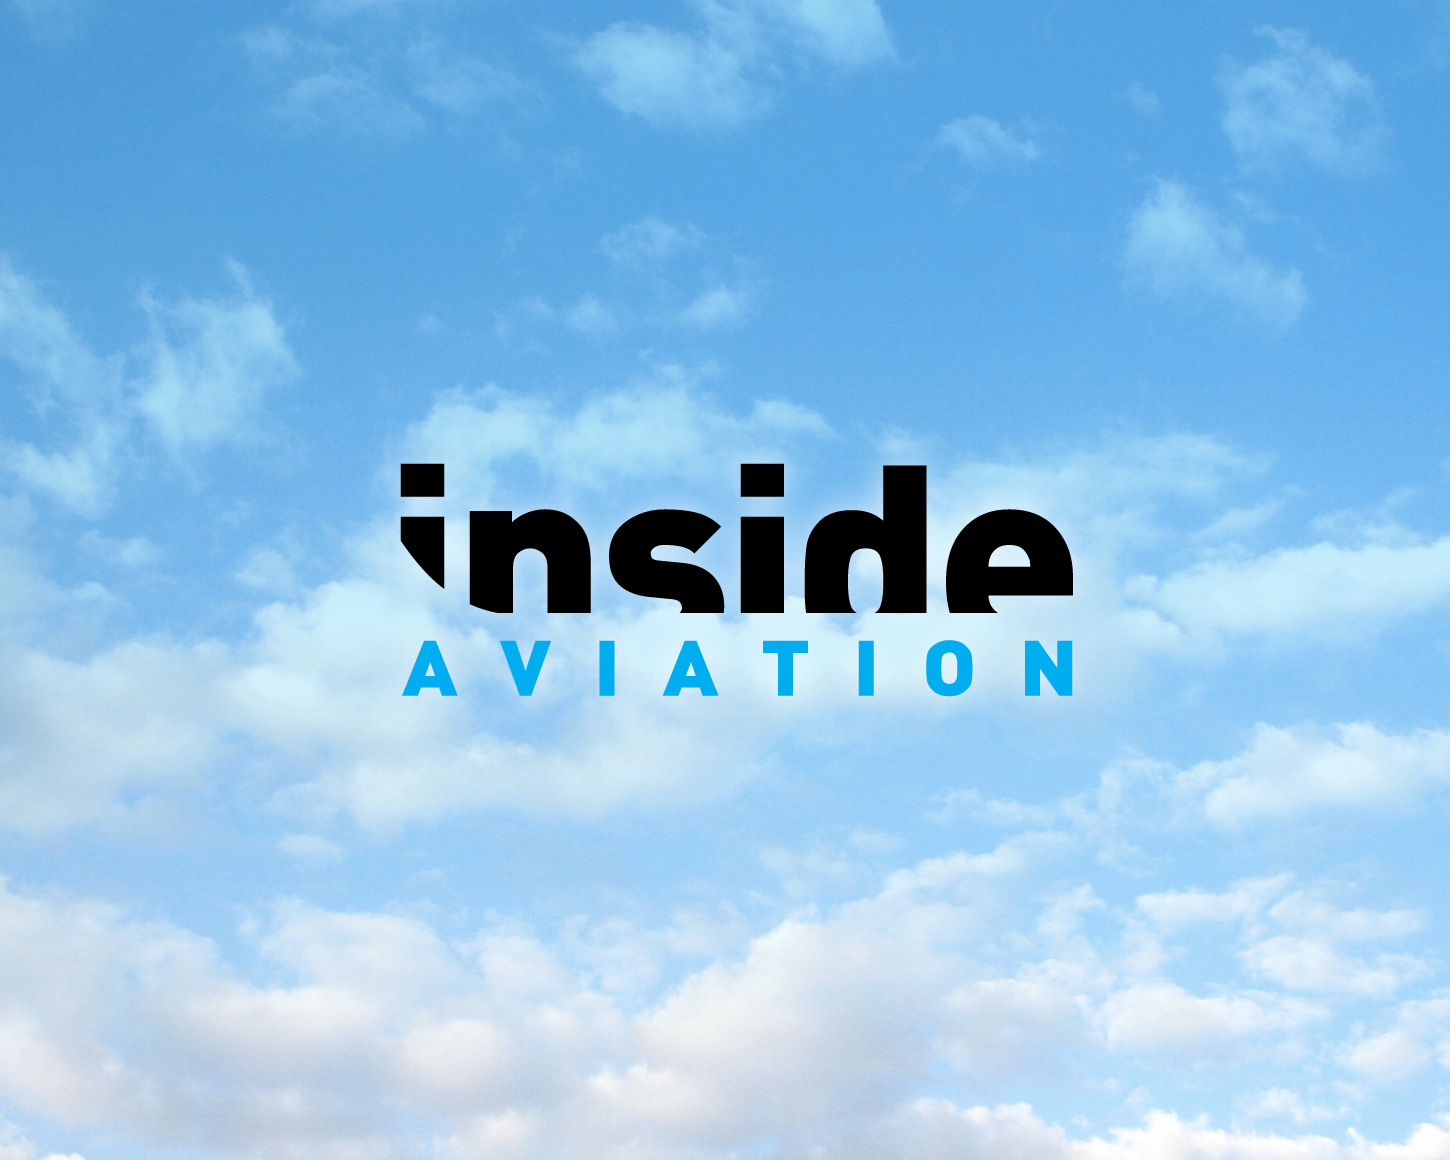 Inside Aviation email